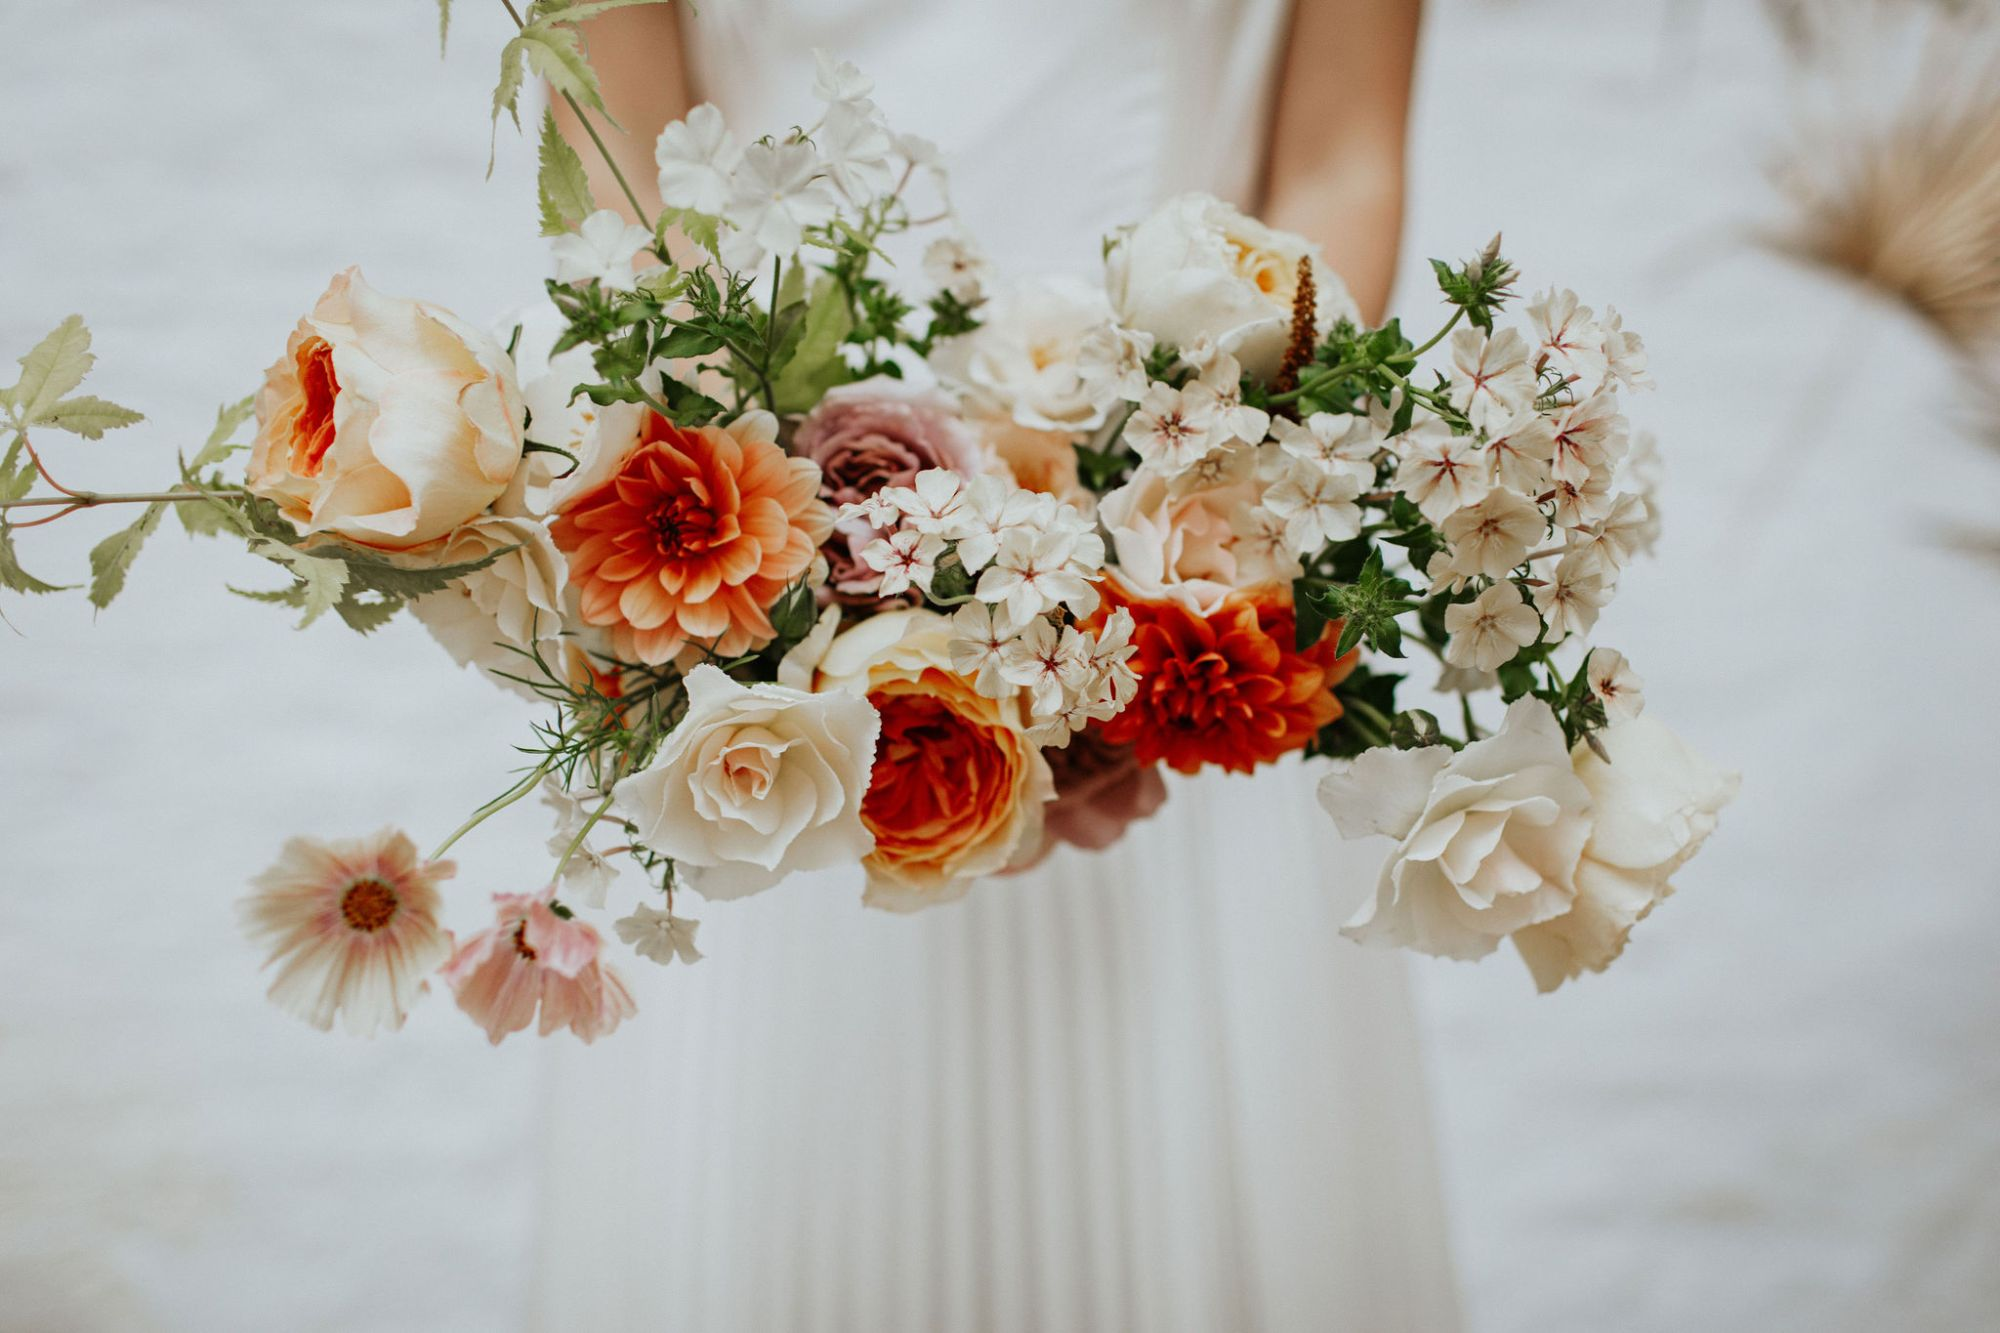 coral and ivory bridal bouquet by Clementine Moon Florist in Bristol